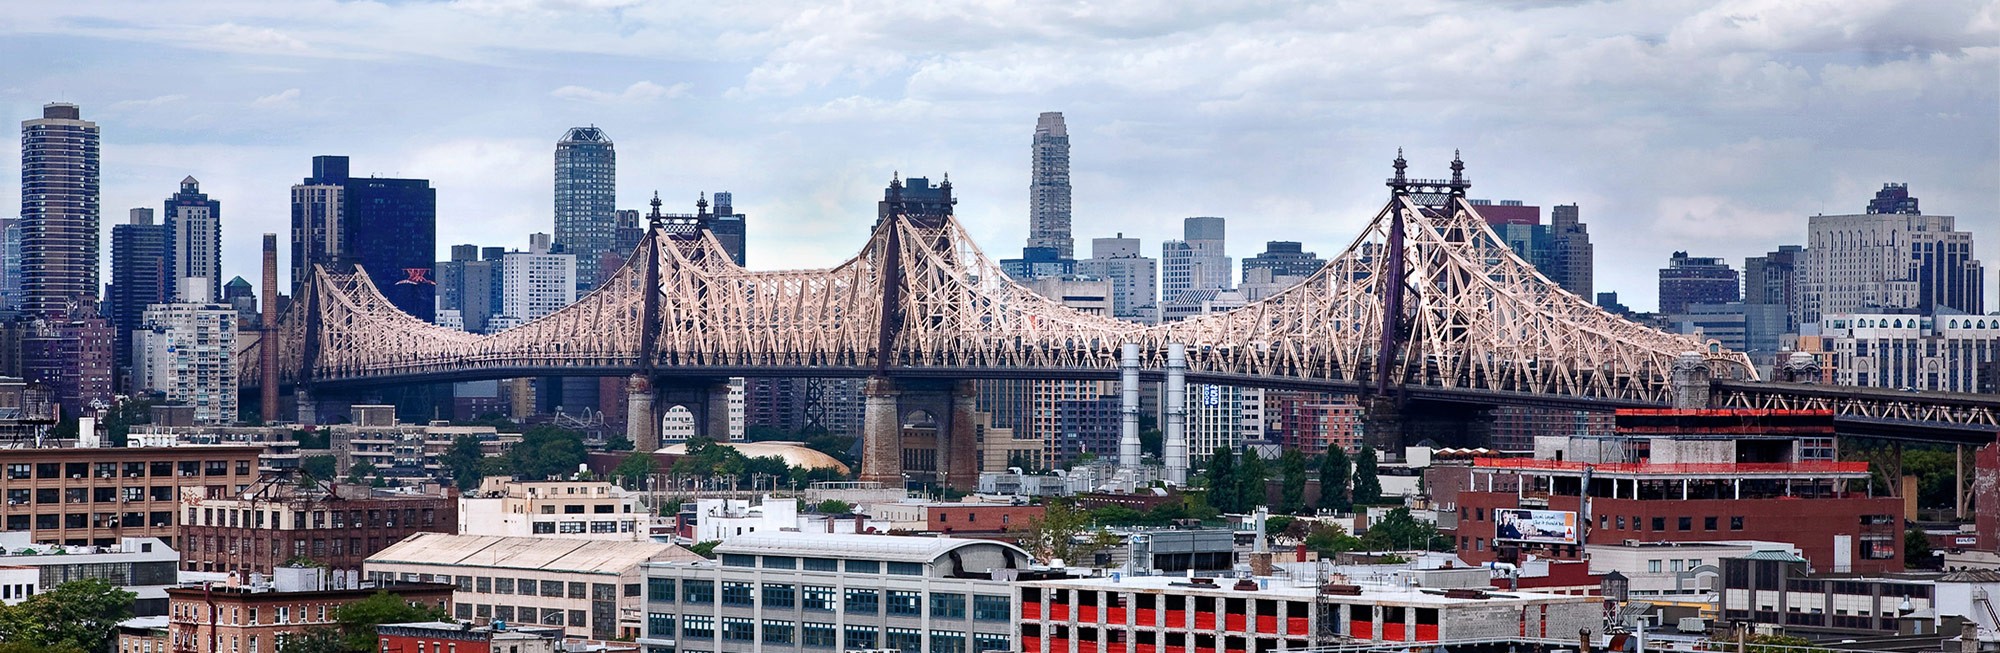 Learn more about our self storage location at Citiwide Self Storage Self Storage in Long Island City NY.